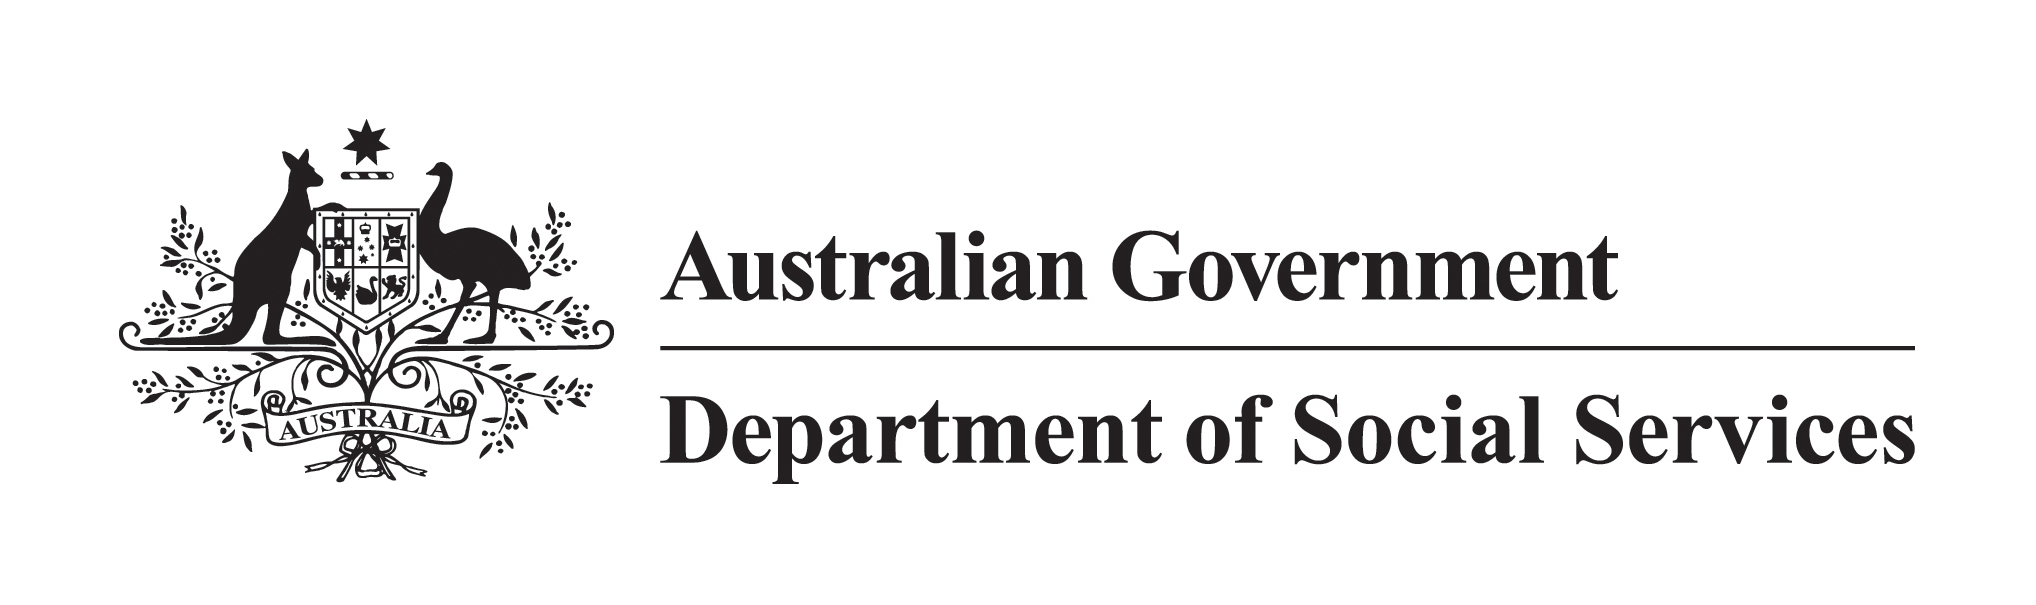 Department of Social Security logo